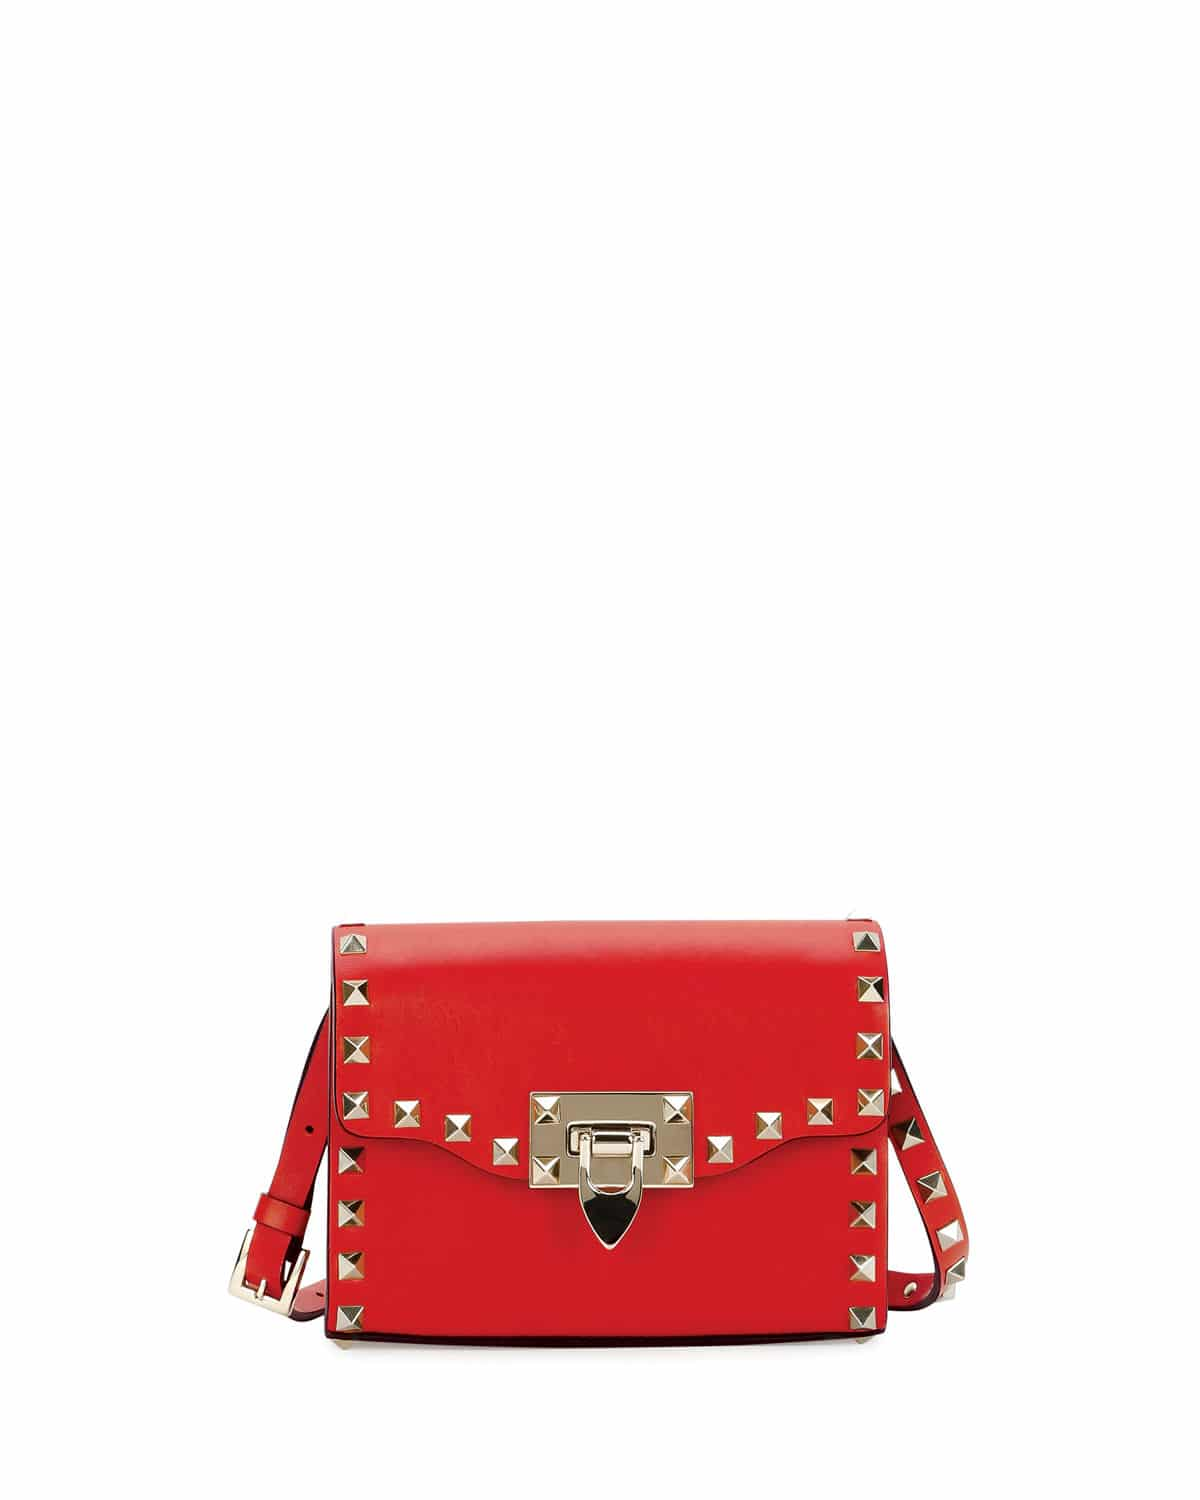 c67e0eb8bb48f Valentino Red Rockstud Mini Flap Shoulder Bag